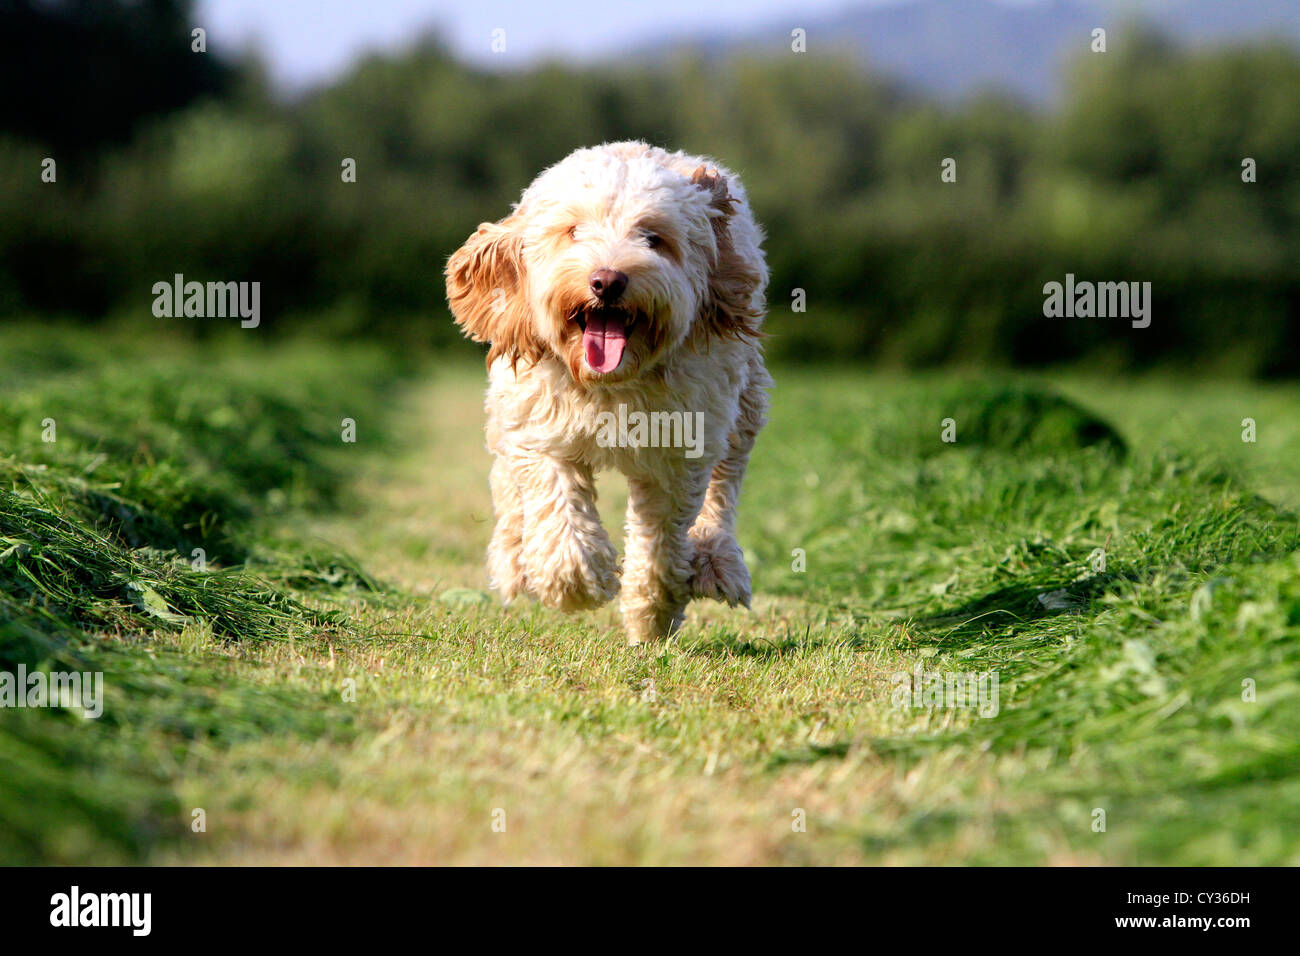 Running Cockapoo in field of cut grass - Stock Image